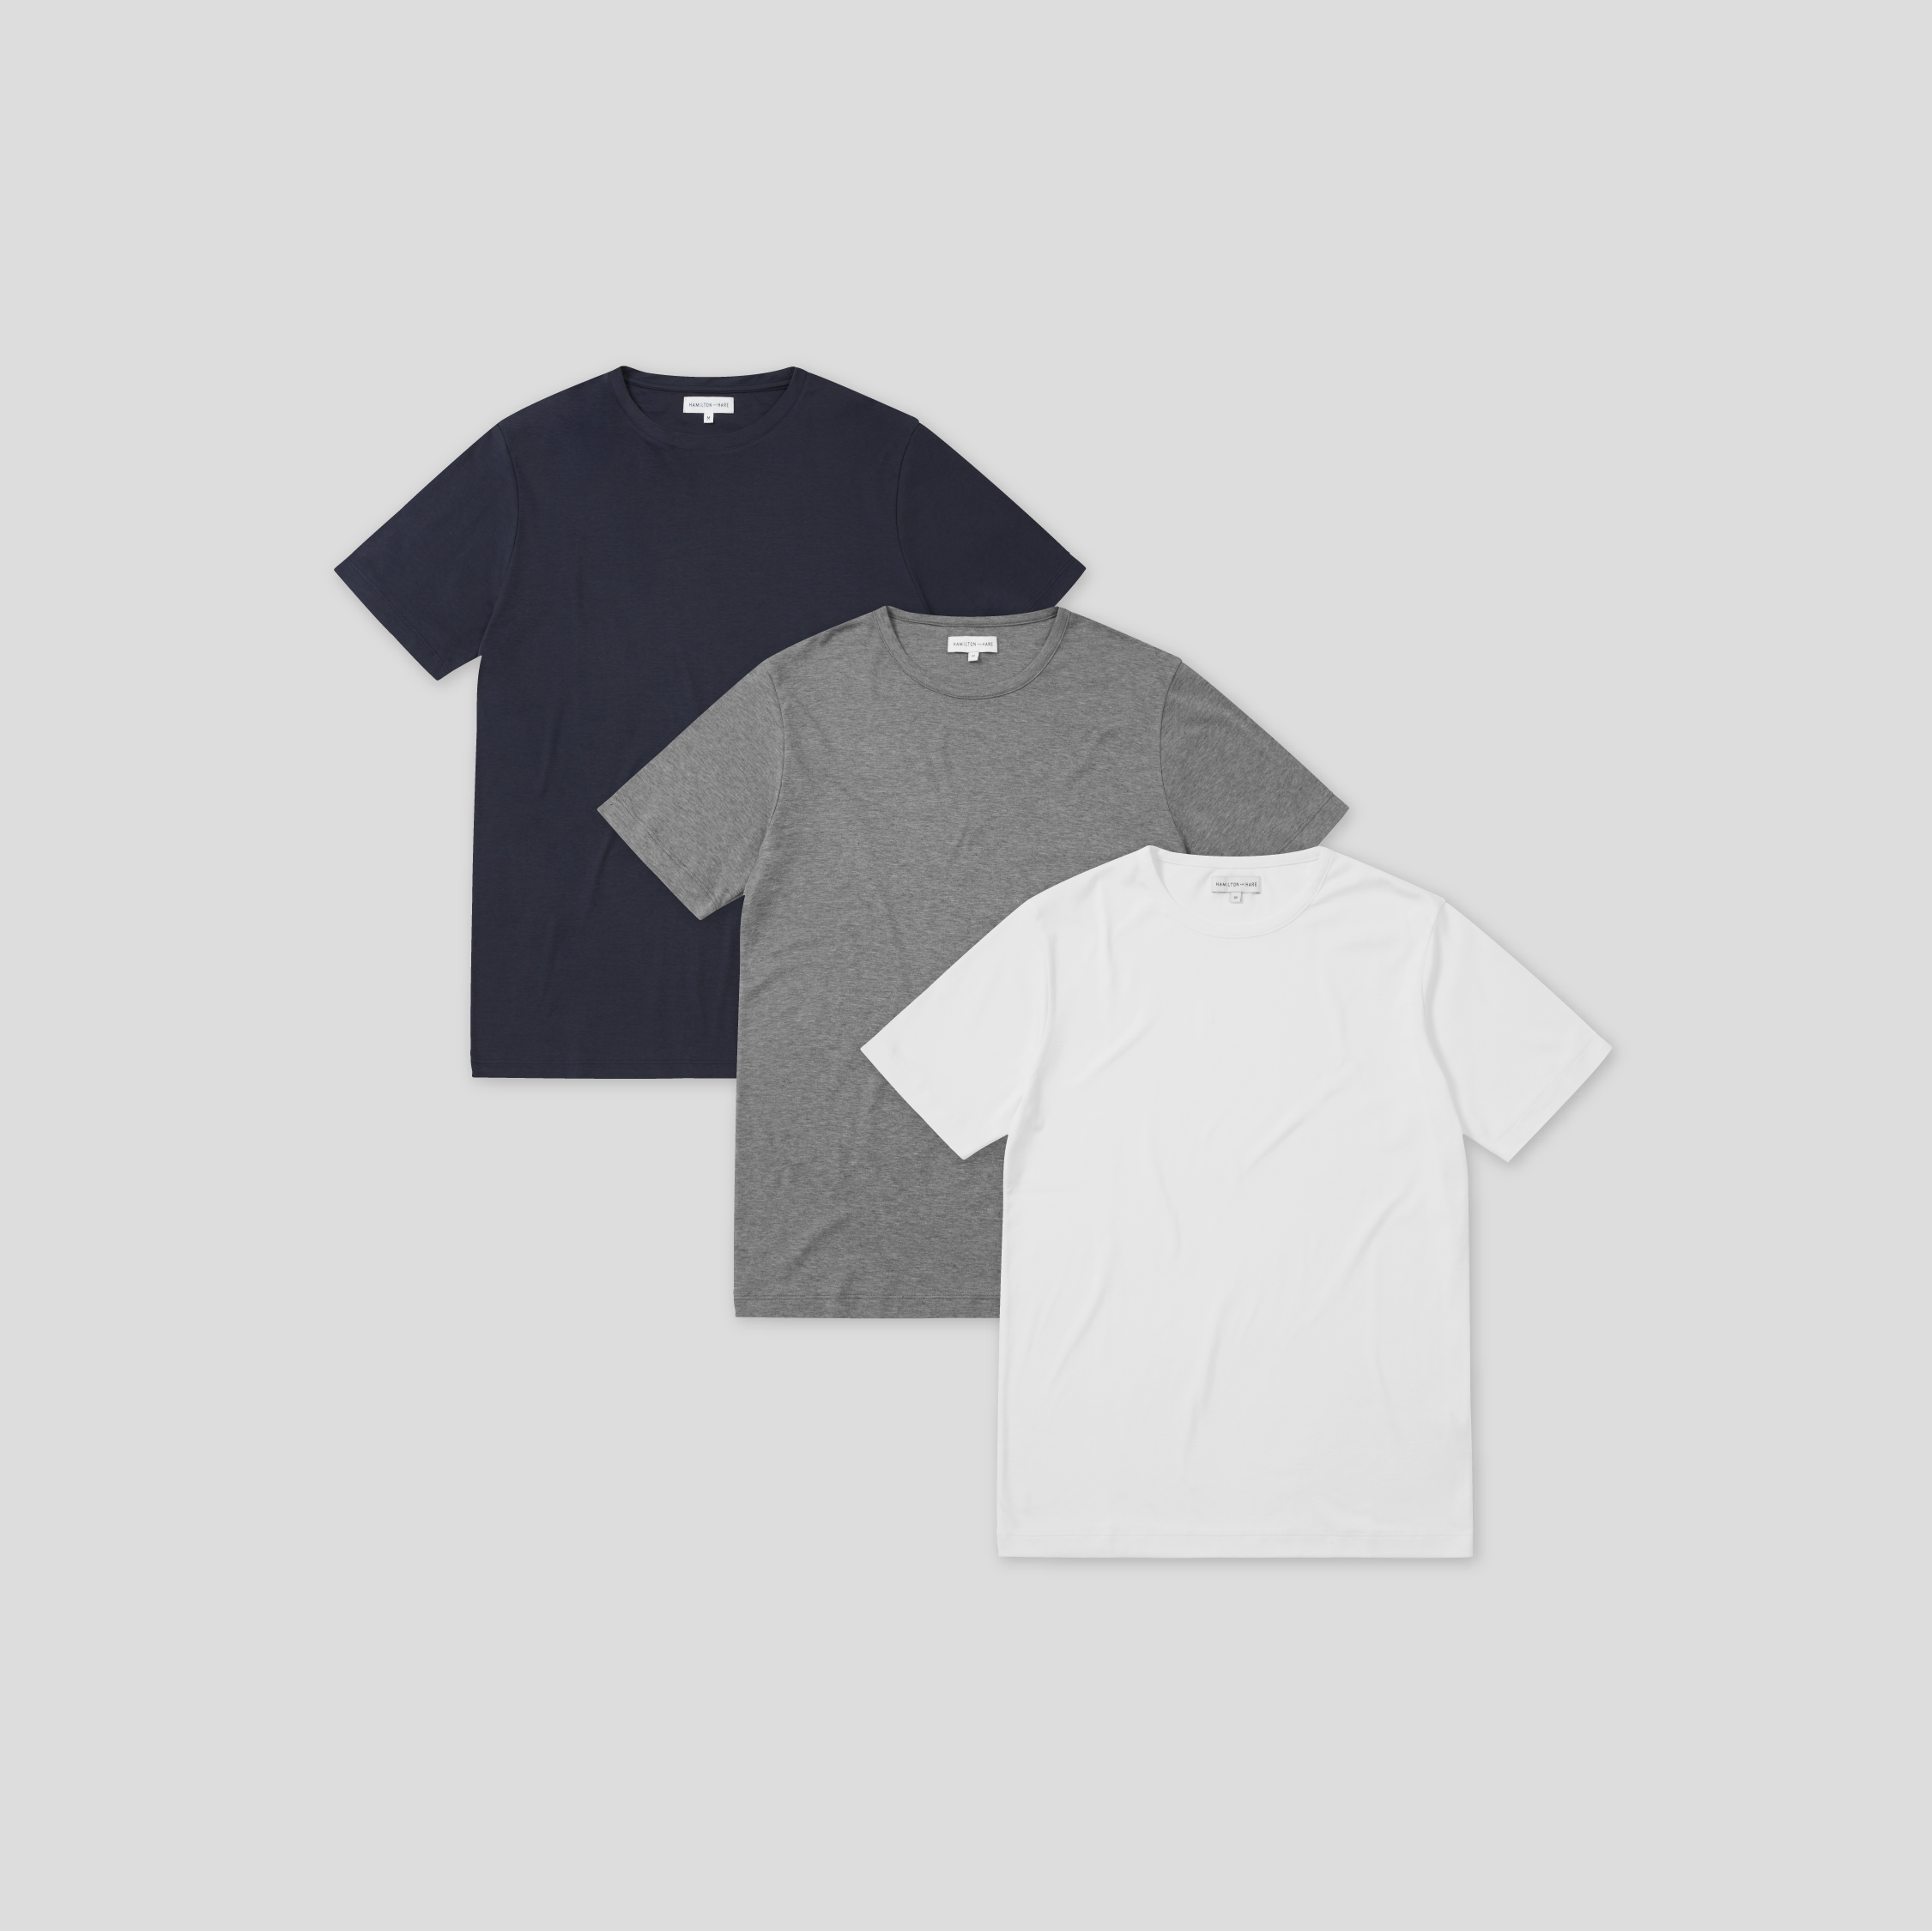 3 Mix Pack Relax Tee - Navy, White, Grey